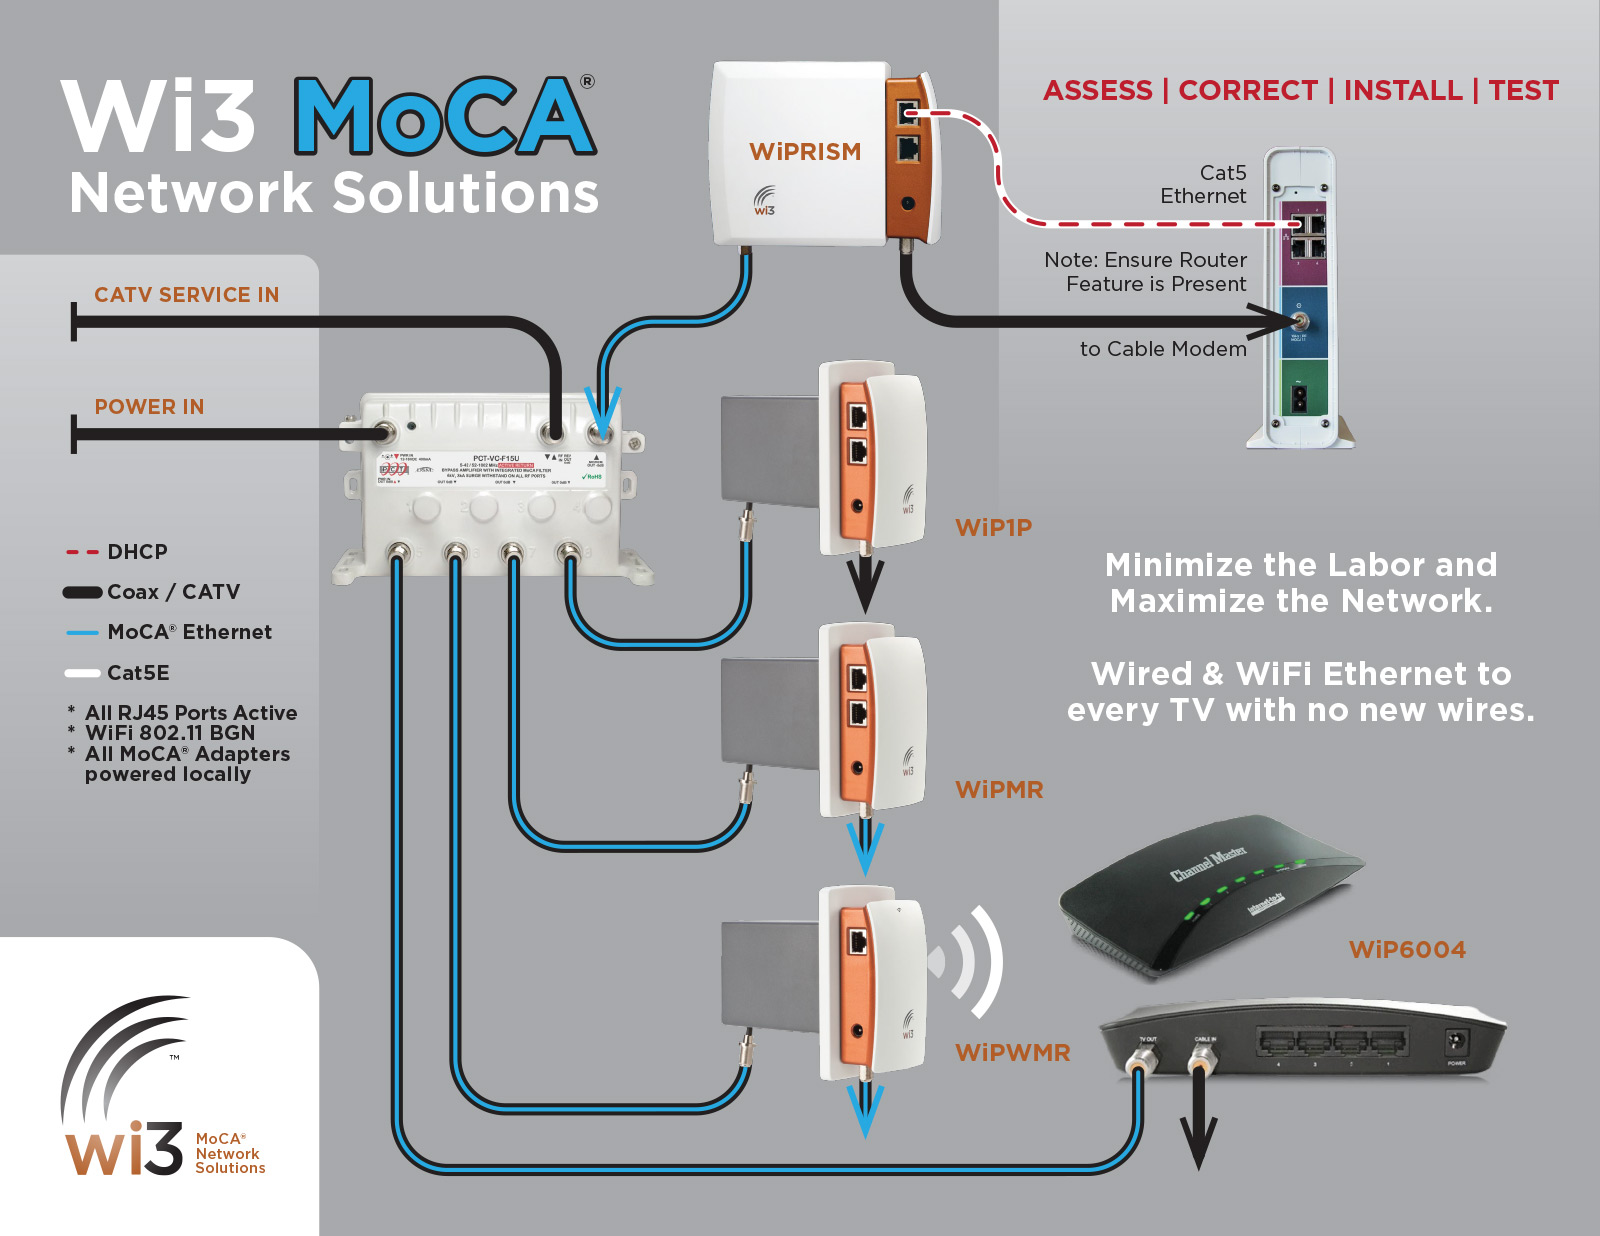 Moca Network Diagram - Great Installation Of Wiring Diagram • on xfinity remote programming, comcast dvr setup diagram, xfinity xfinity tv diagrams, xfinity switch, comcast install diagram, comcast xfinity diagram, comcast phone installation diagram, comcast cable hook up diagram, xfinity cable, xfinity dta box diagram, xfinity cabling diagram, xfinity hd wiring, comcast cable box connection diagram, moca diagram, xfinity installation diagram,